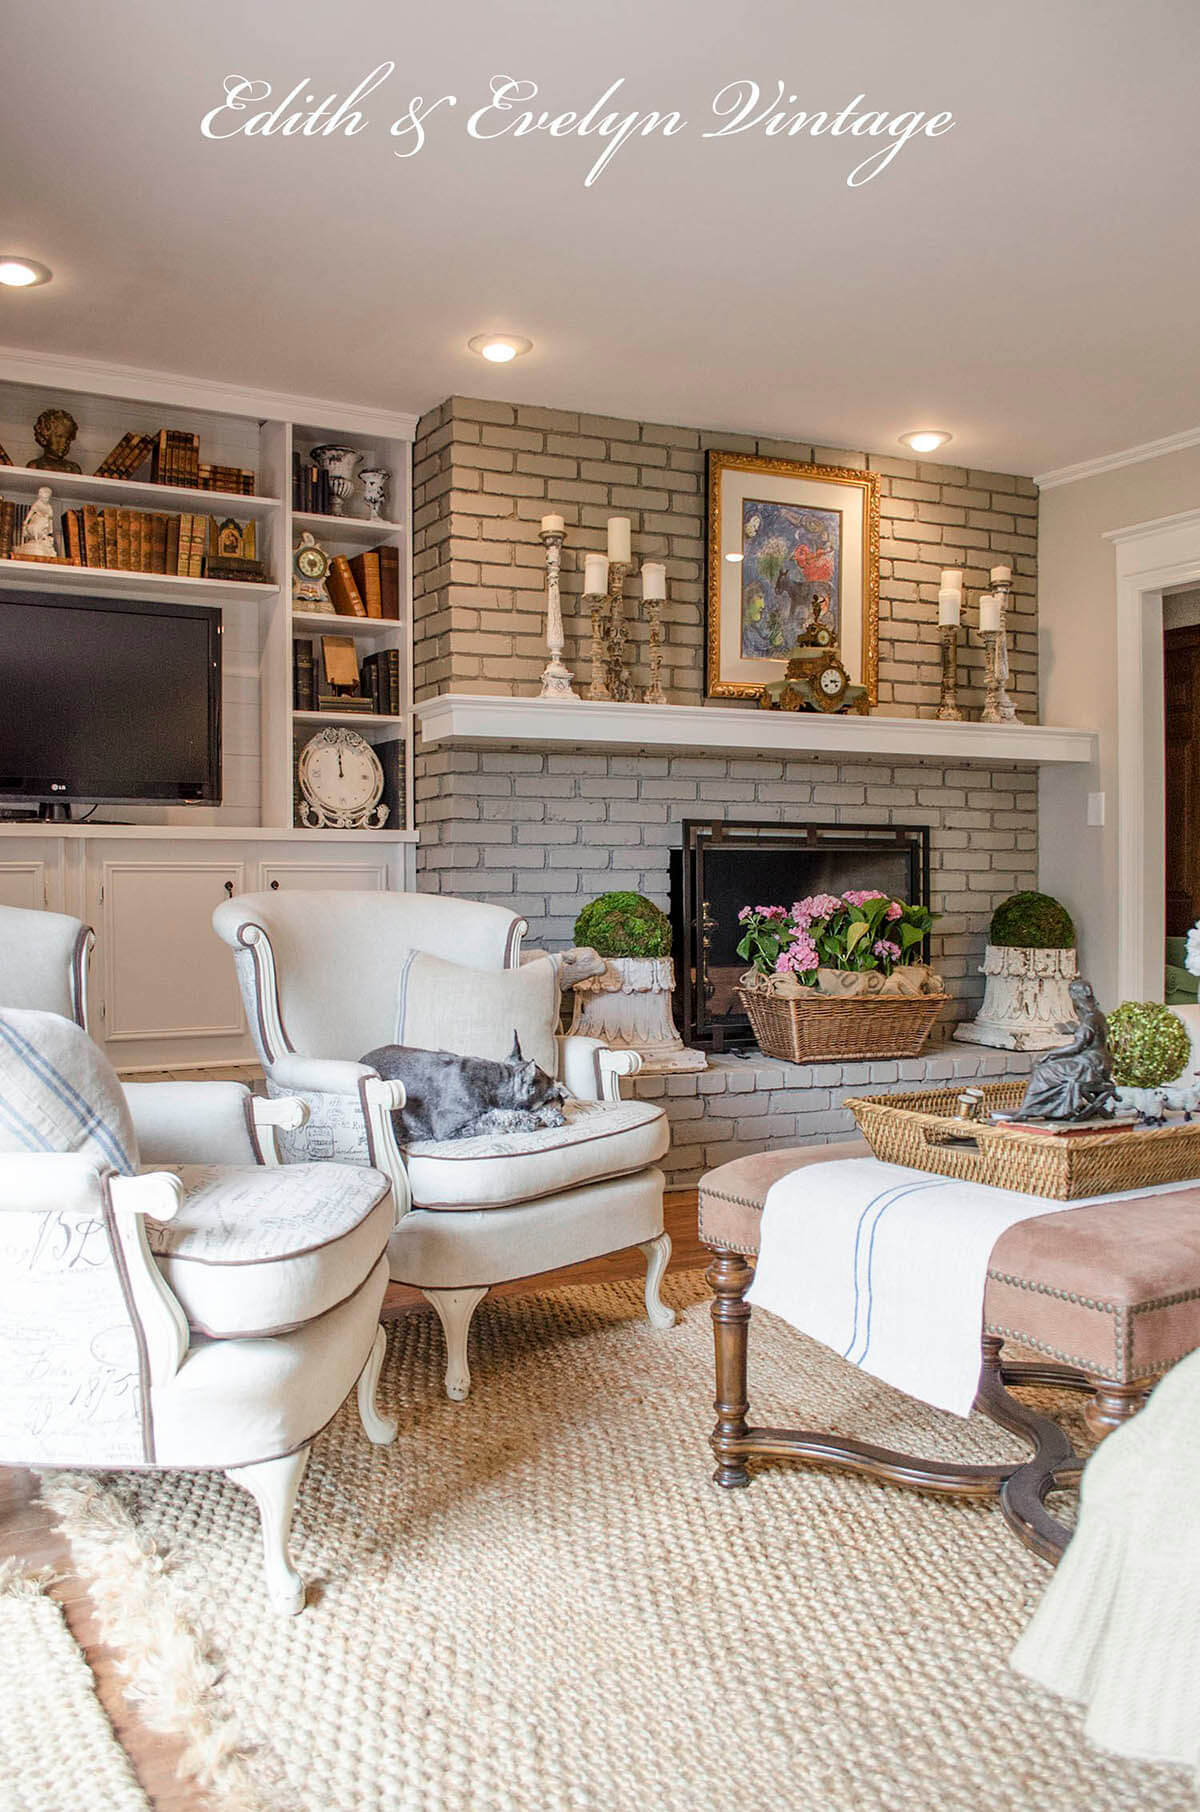 23 Best Brick Fireplace Ideas To Make Your Living Room Inviting In 2020